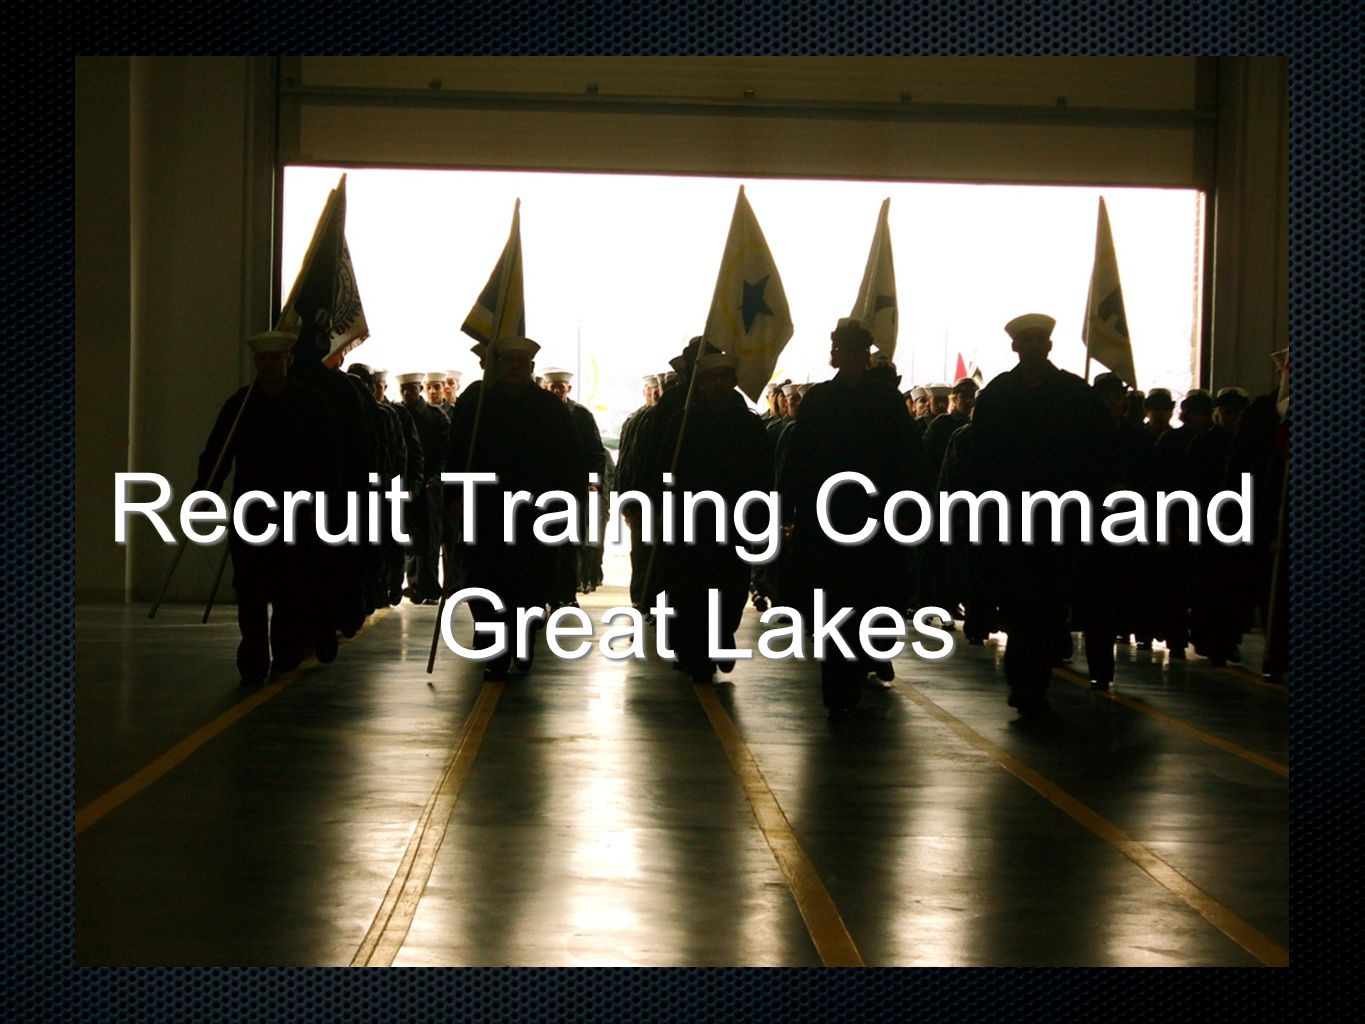 Recruit Training Command Great Lakes